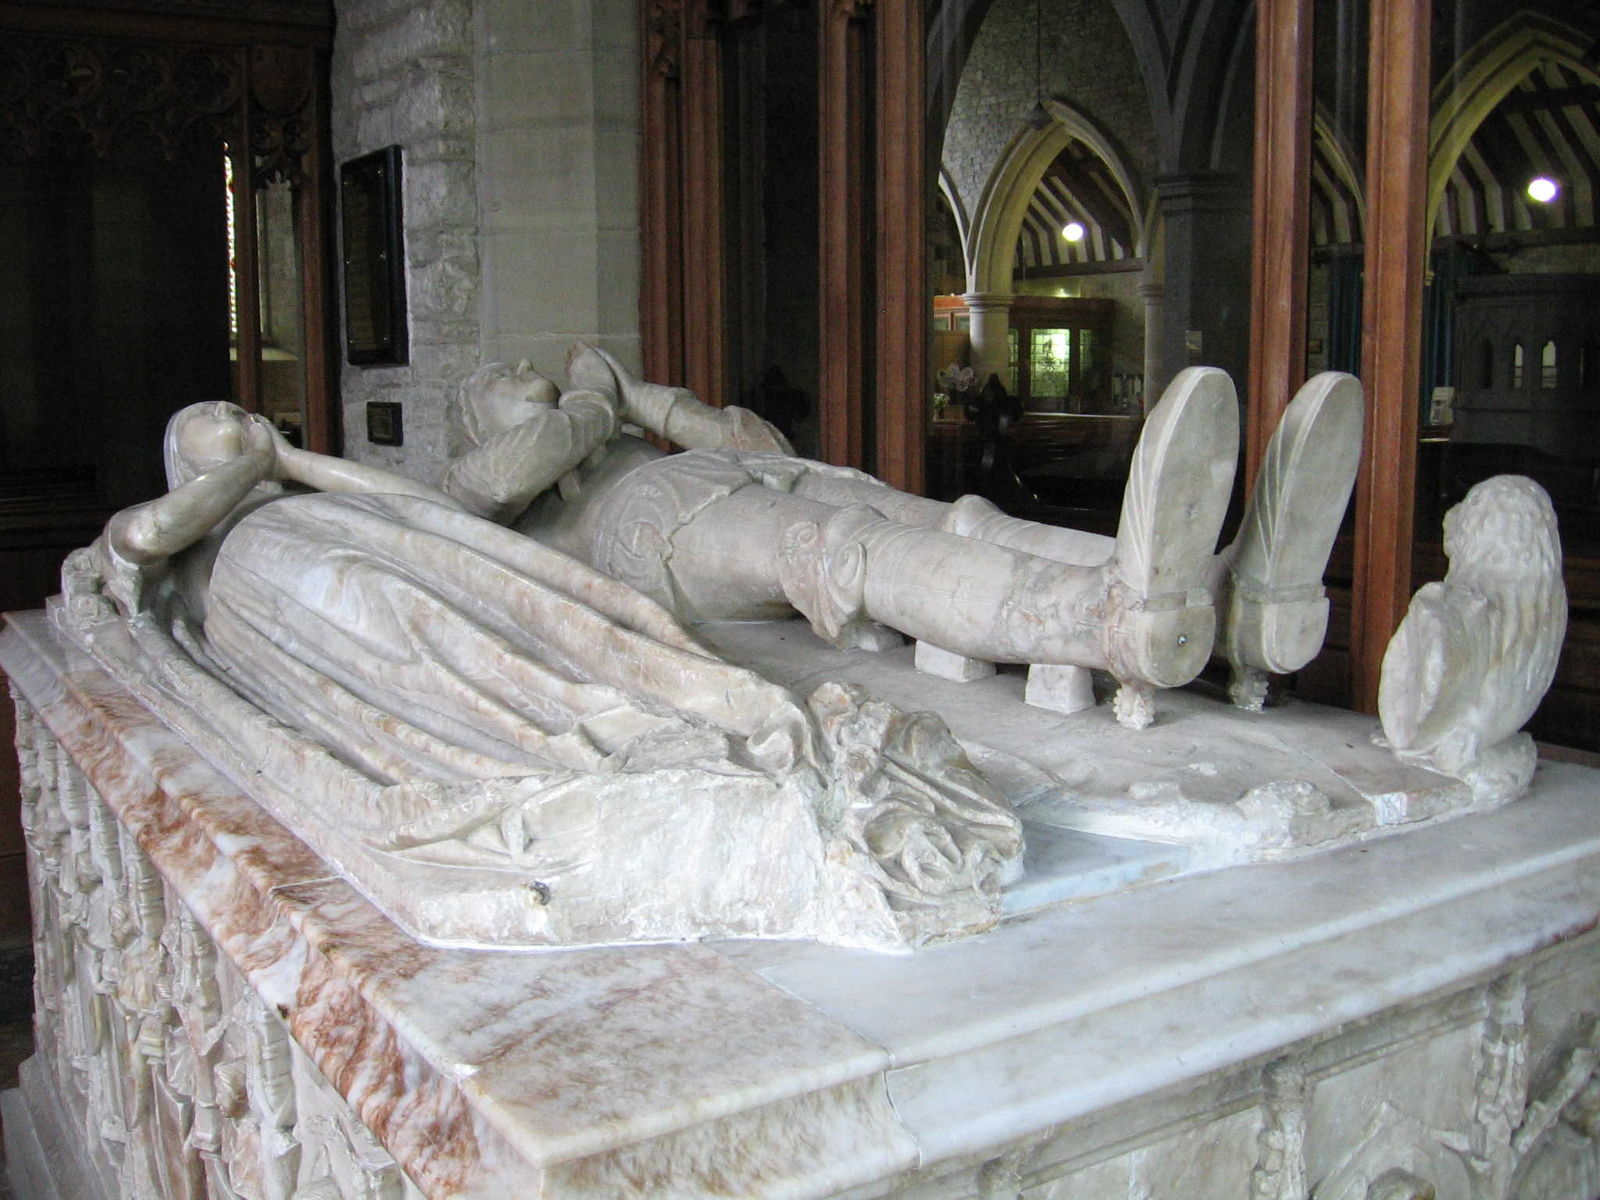 the tomb of Thomas Vaughan